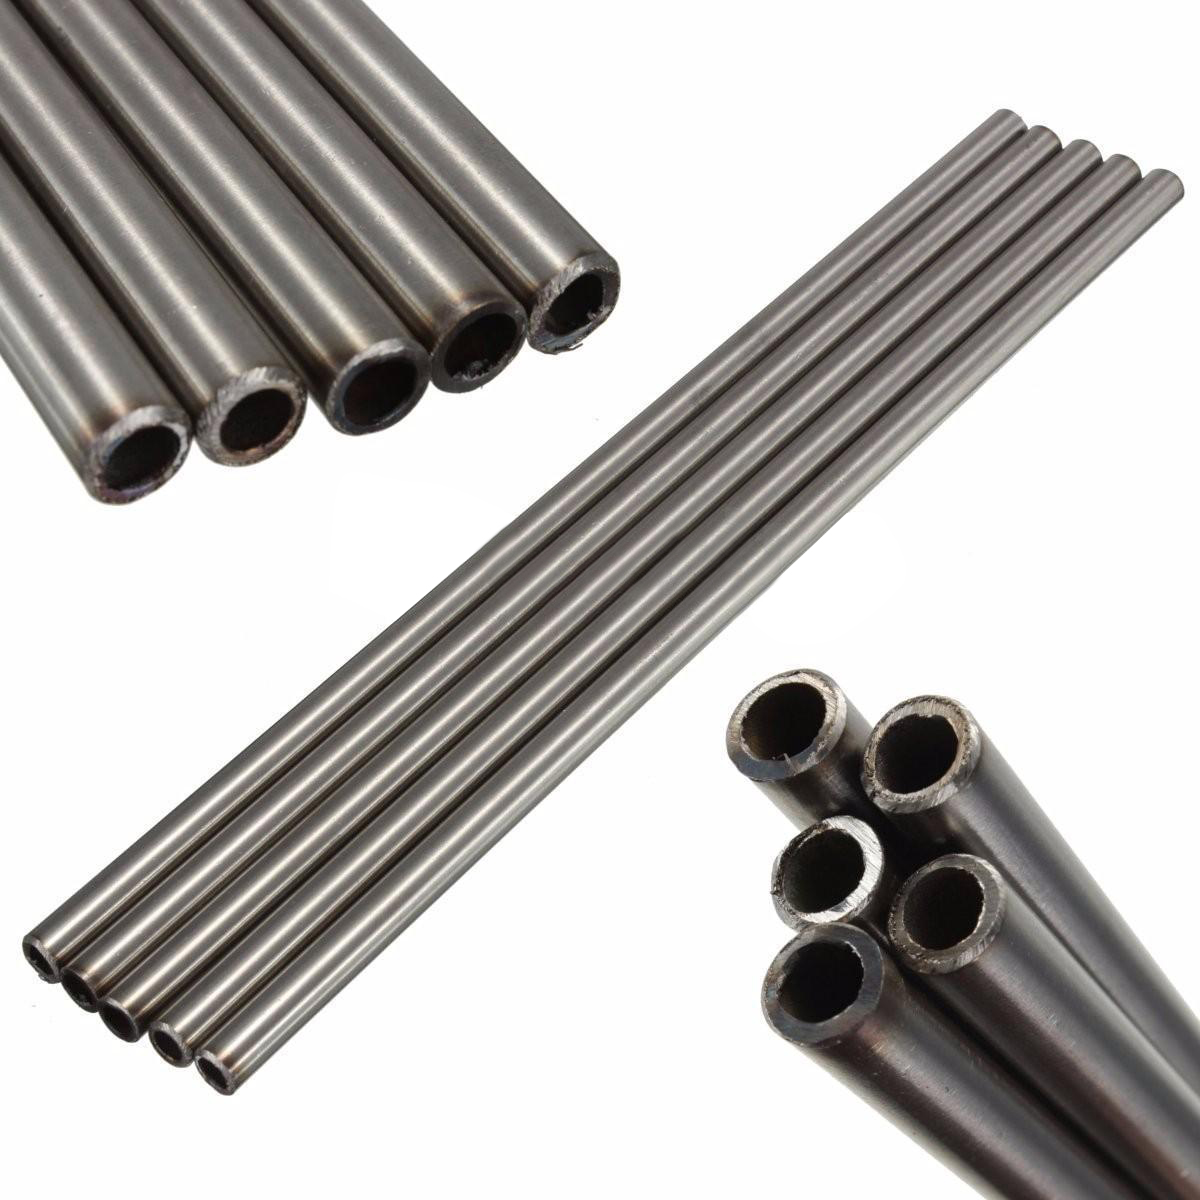 Silver 304 Stainless Steel Capillary Tube Tool OD 8mm 6mm ID Length 250mm 5pcs 304 stainless steel capillary tube 3mm od 2mm id 250mm length silver for hardware accessories